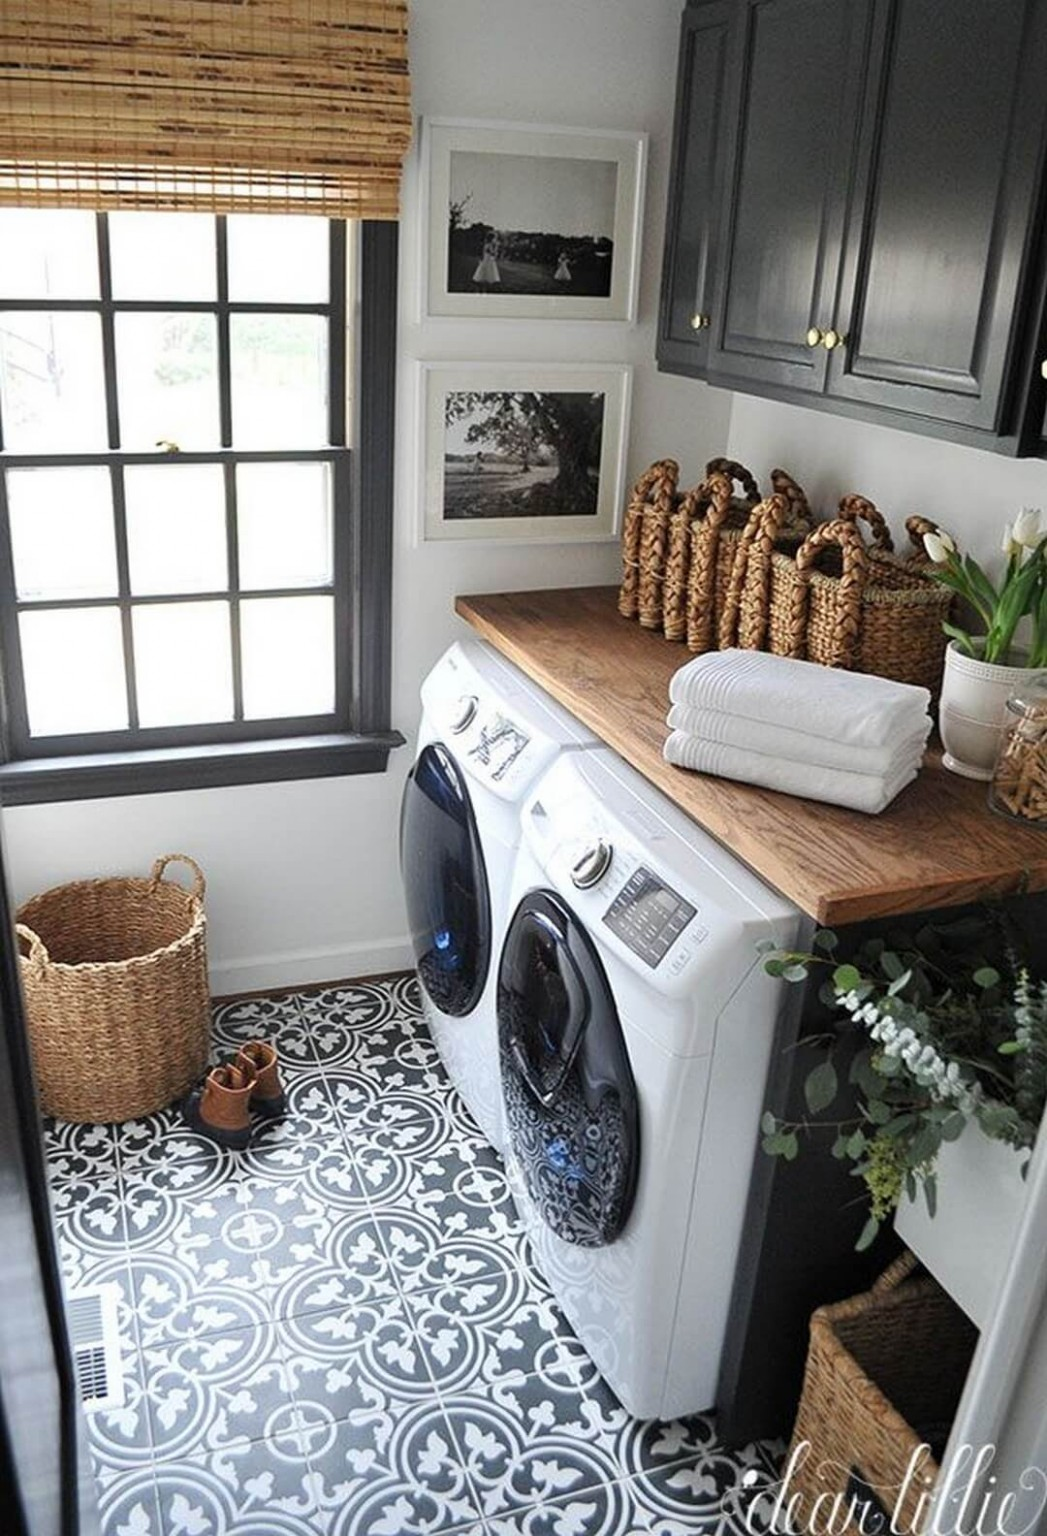 12 Best Small Laundry Room Design Ideas for 12 - Laundry Room Office Ideas